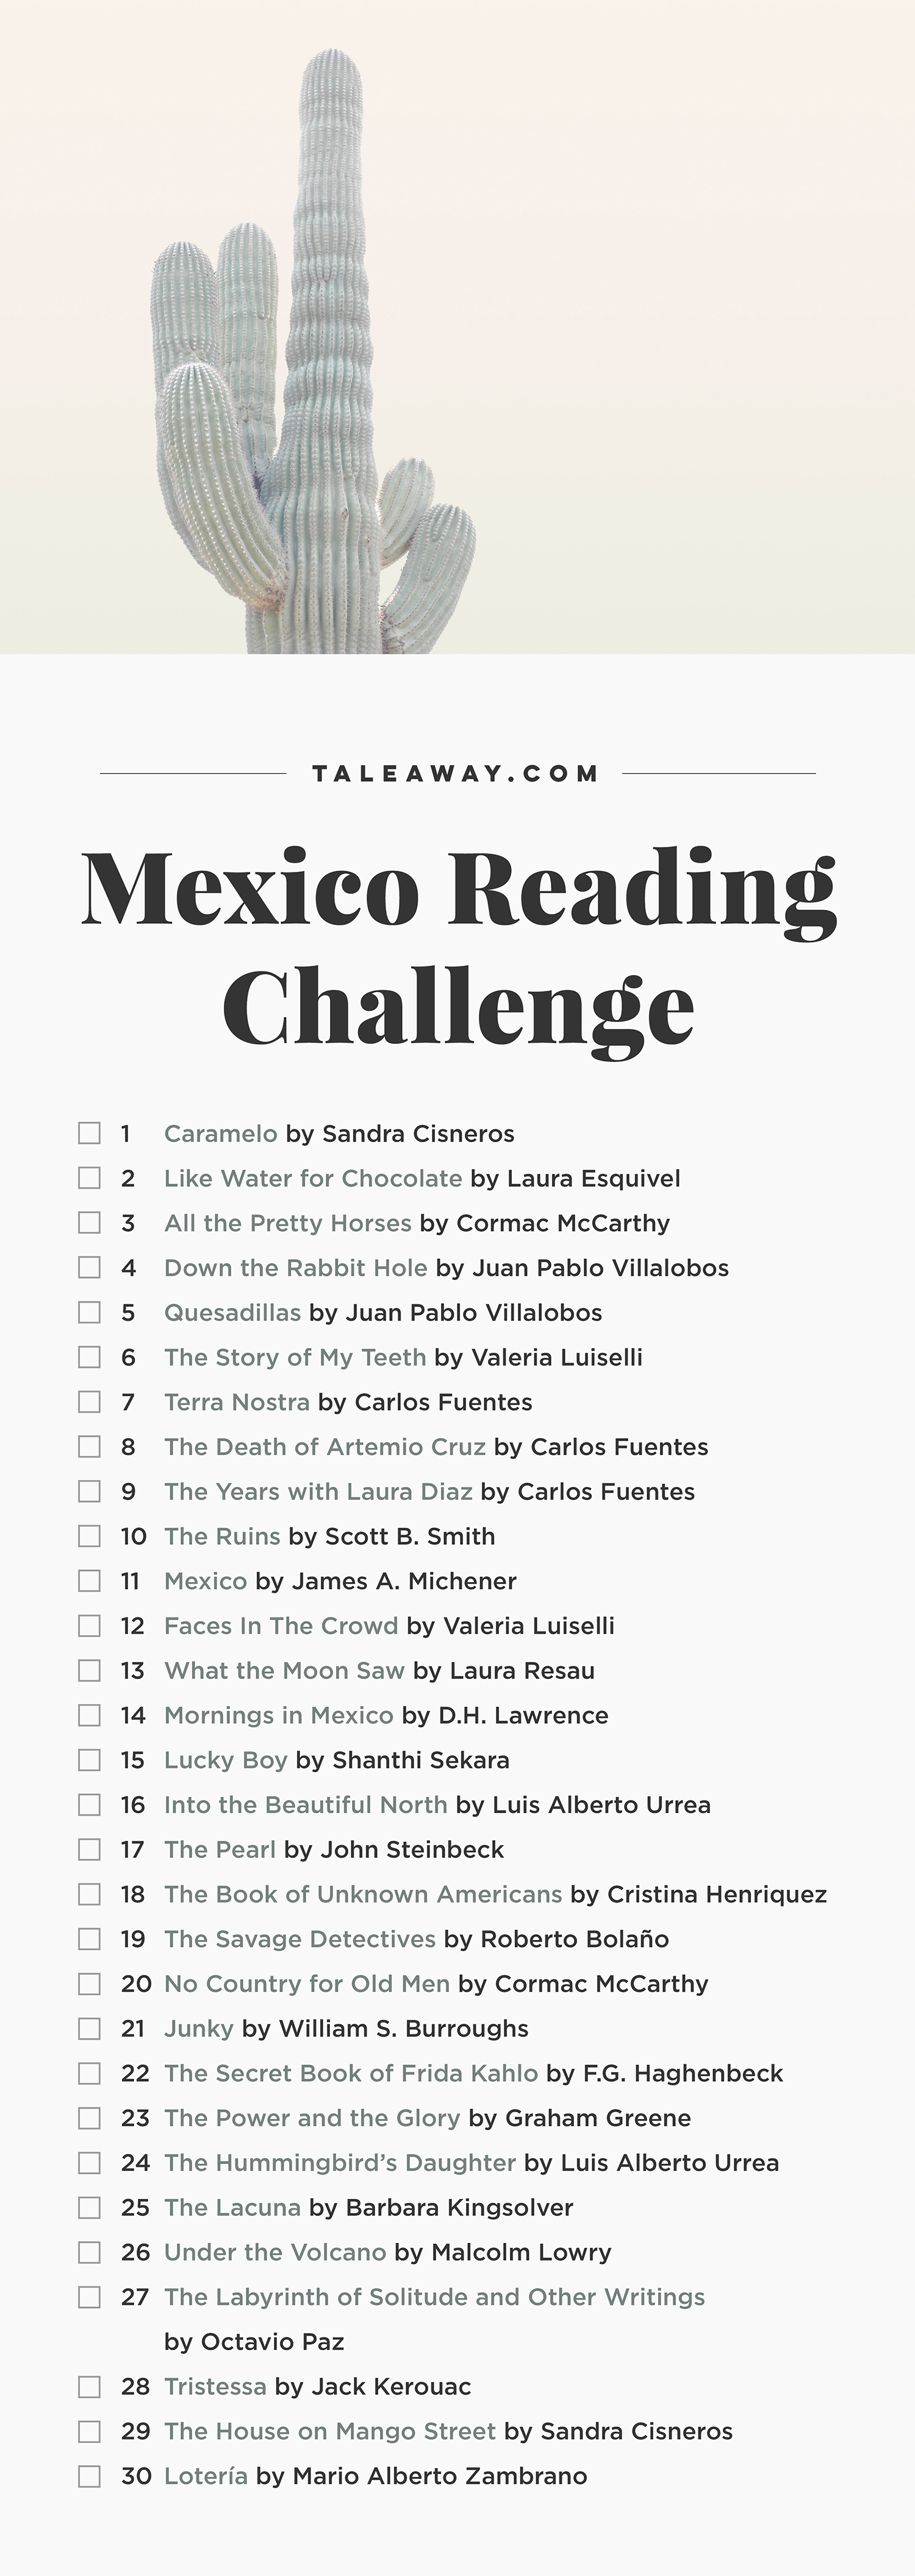 Mexico Reading Challenge, Books Set In Mexico - For more books visit www.taleway.com to find books set around the world. Ideas for those who like to travel, both in life and in fiction. reading challenge, mexico reading challenge, book challenge, books you must read, books from around the world, world books, books and travel, travel reading list, reading list, books around the world, books to read, mexico books, mexico books novels, mexico travel